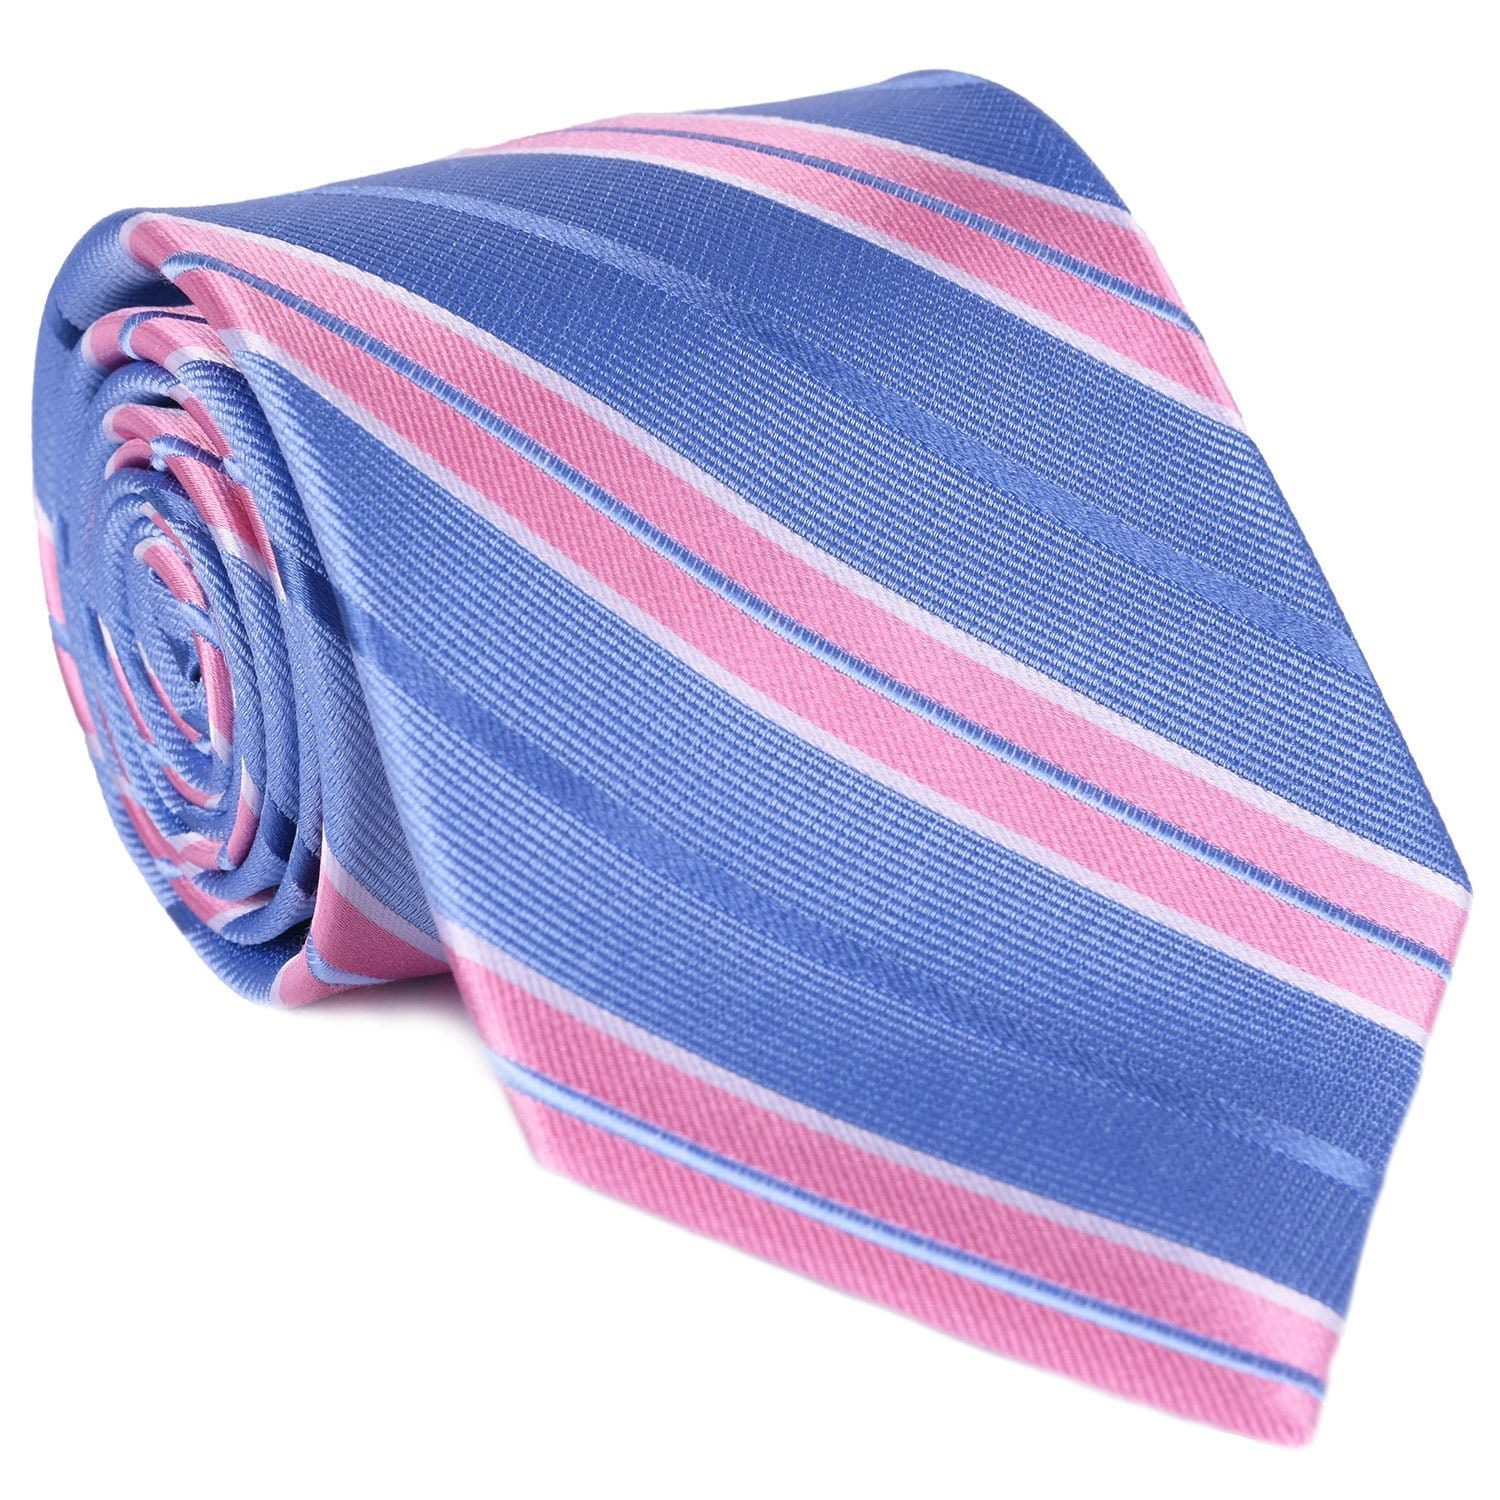 Lt. Blue & Pink Rep Tie - Haspel Clothing